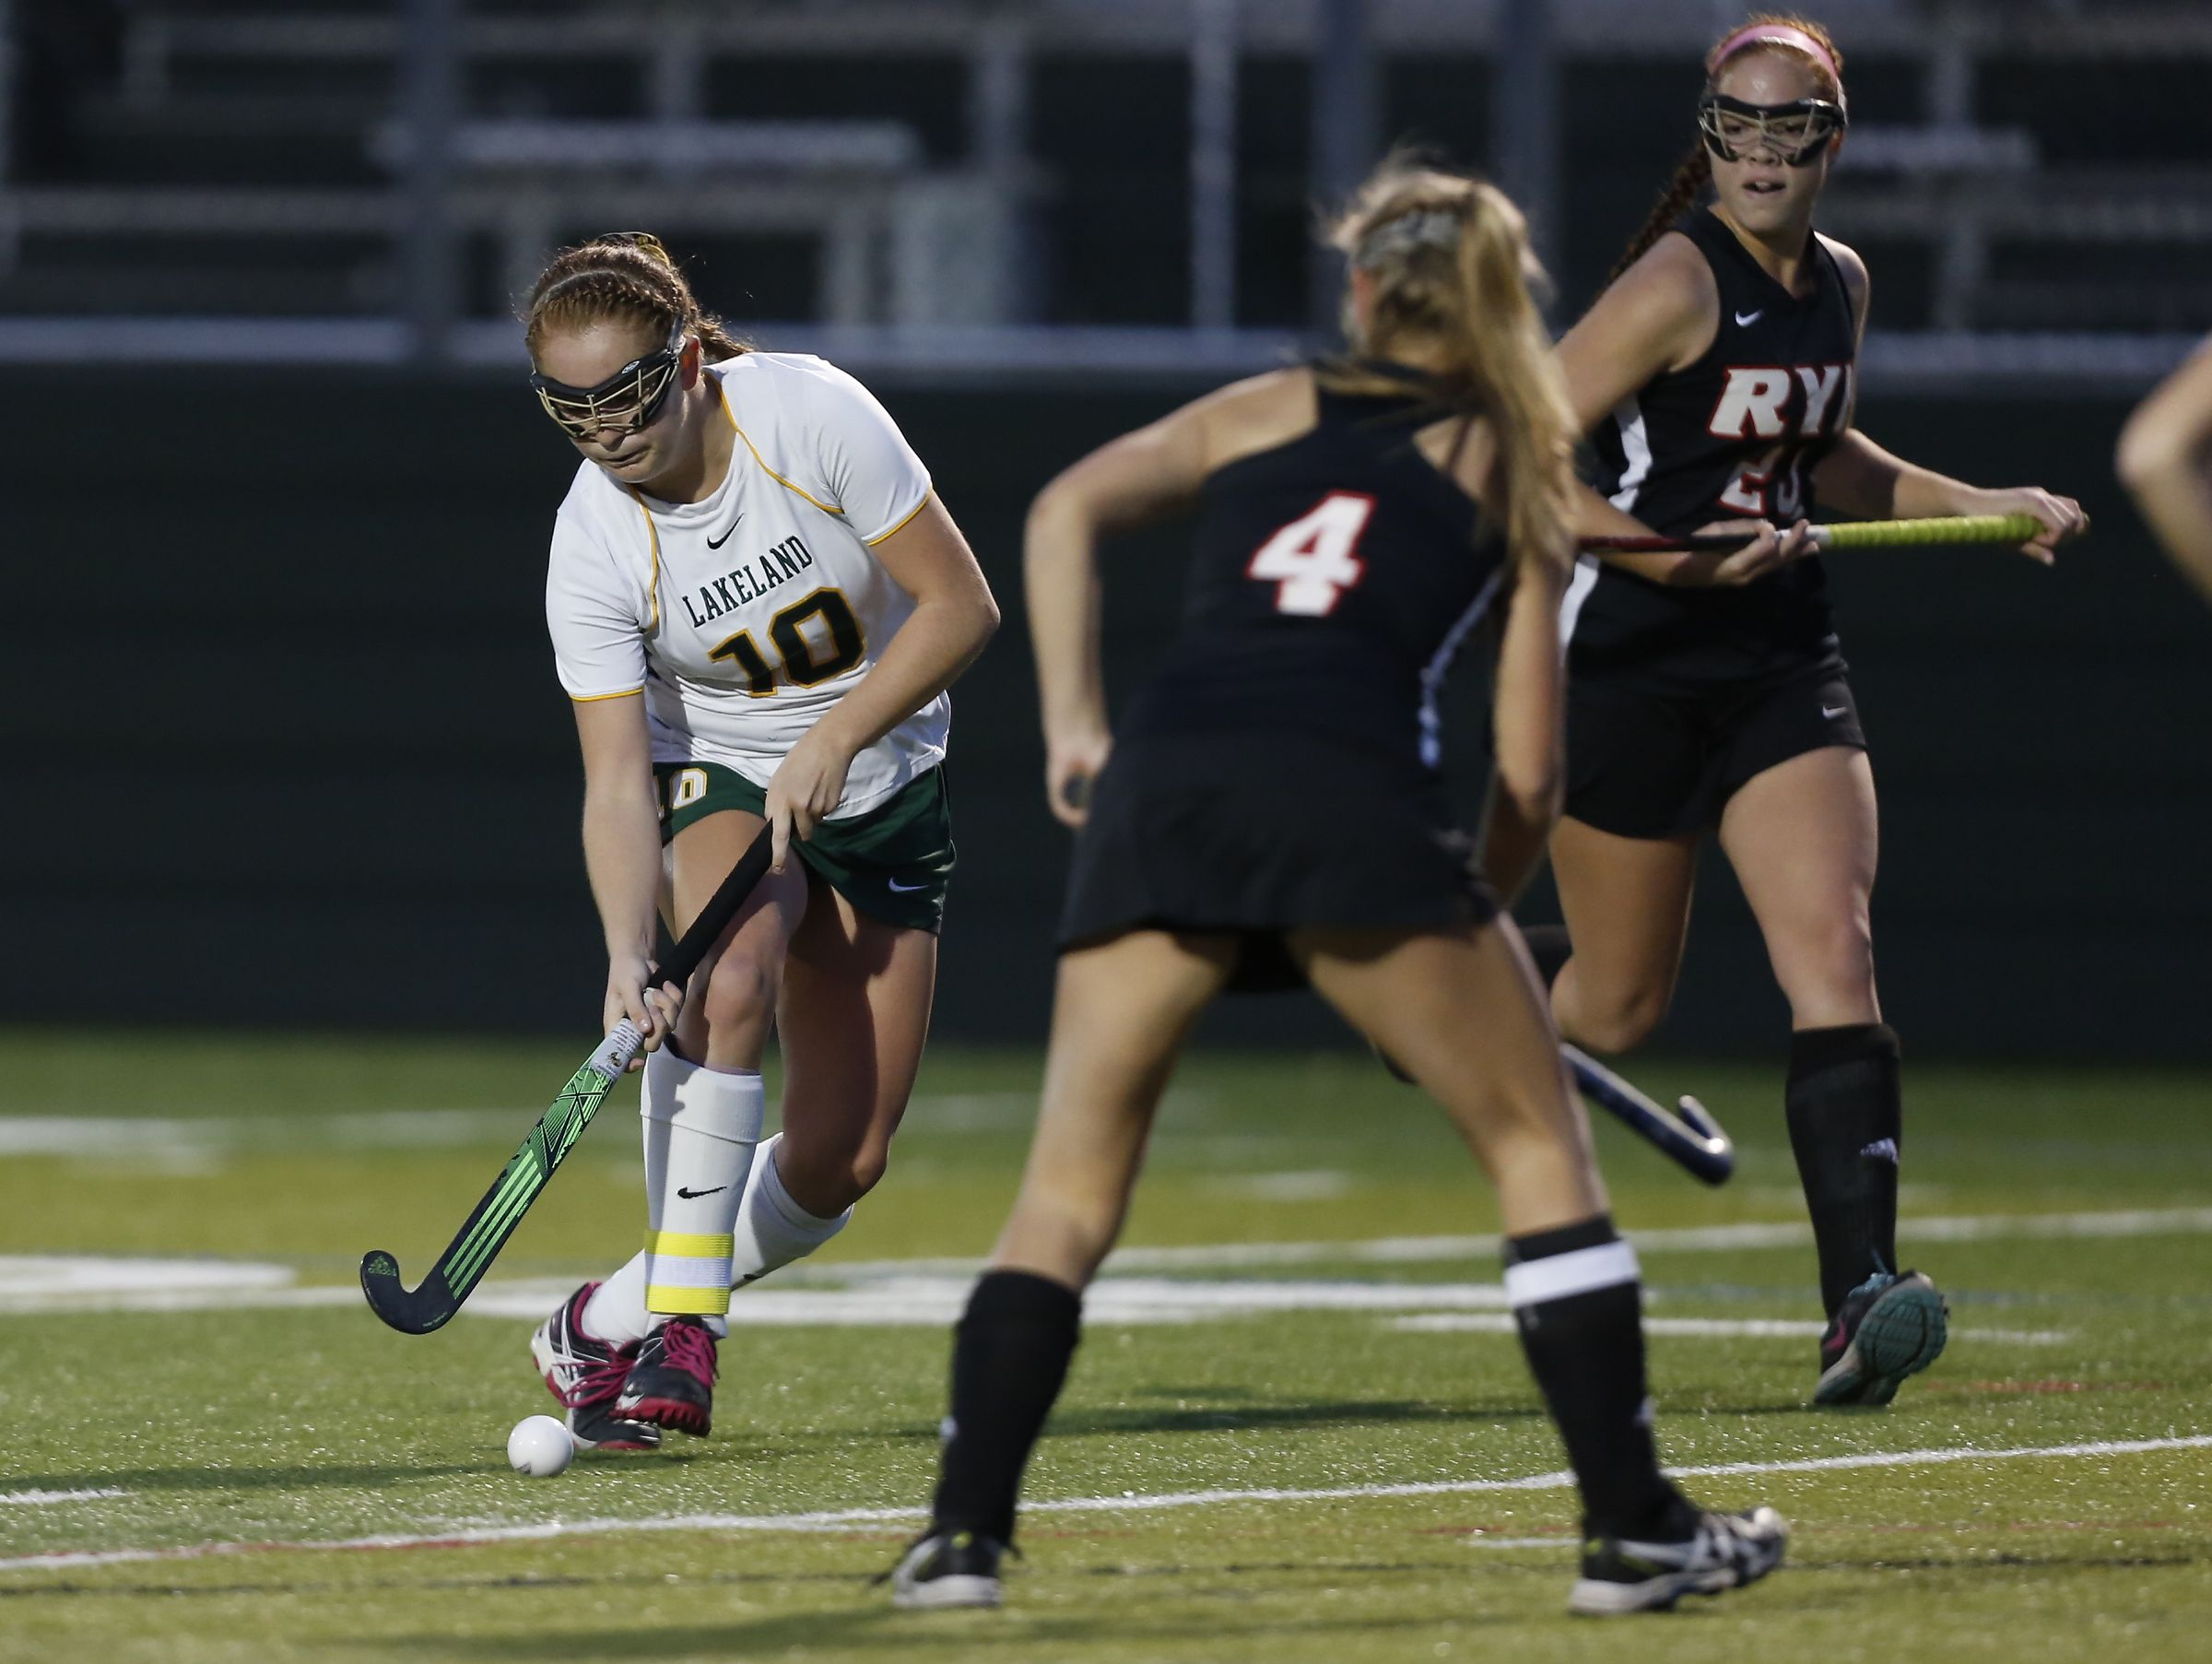 Lakeland's Meghan Fahey (10) works the ball into the Rye defense during their 4-1 win over Rye in the Class B field hockey section finals at Brewster High School on Tuesday, November 1, 2016.